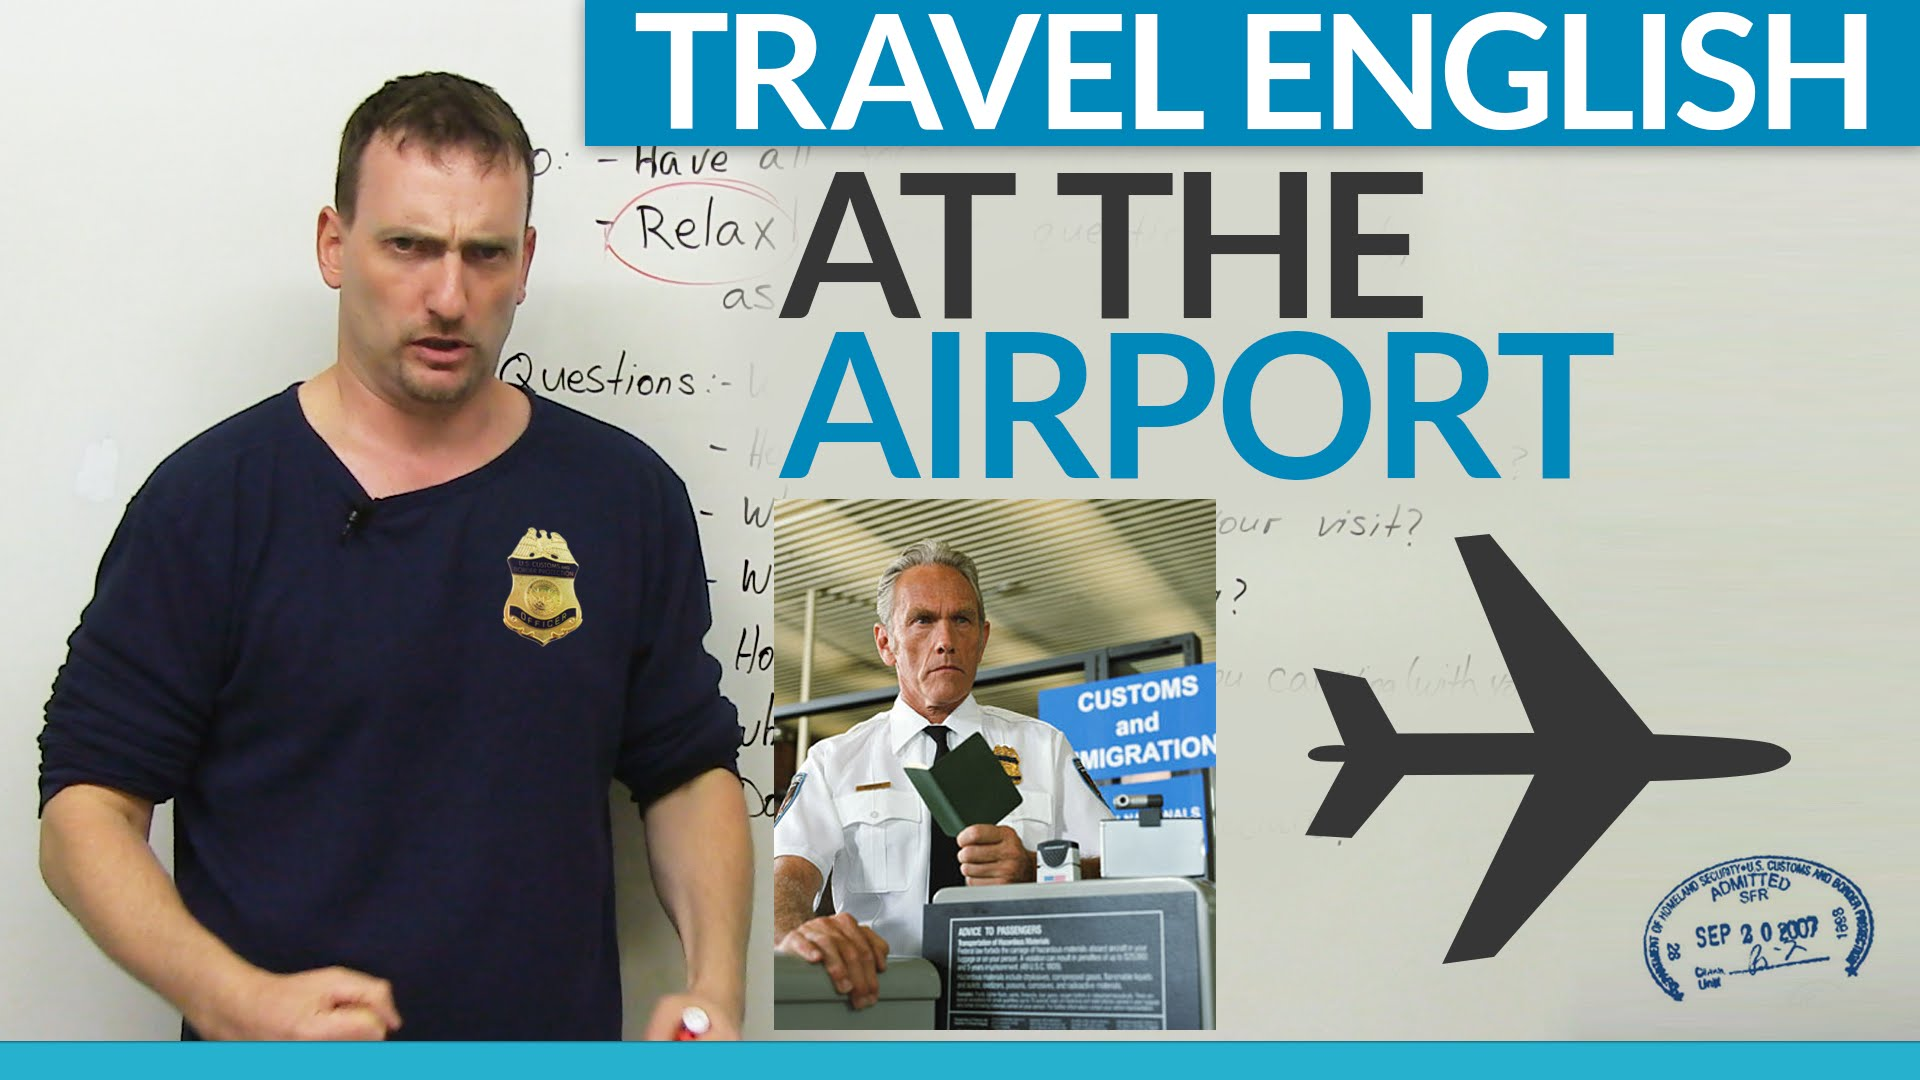 English for travel through the airport